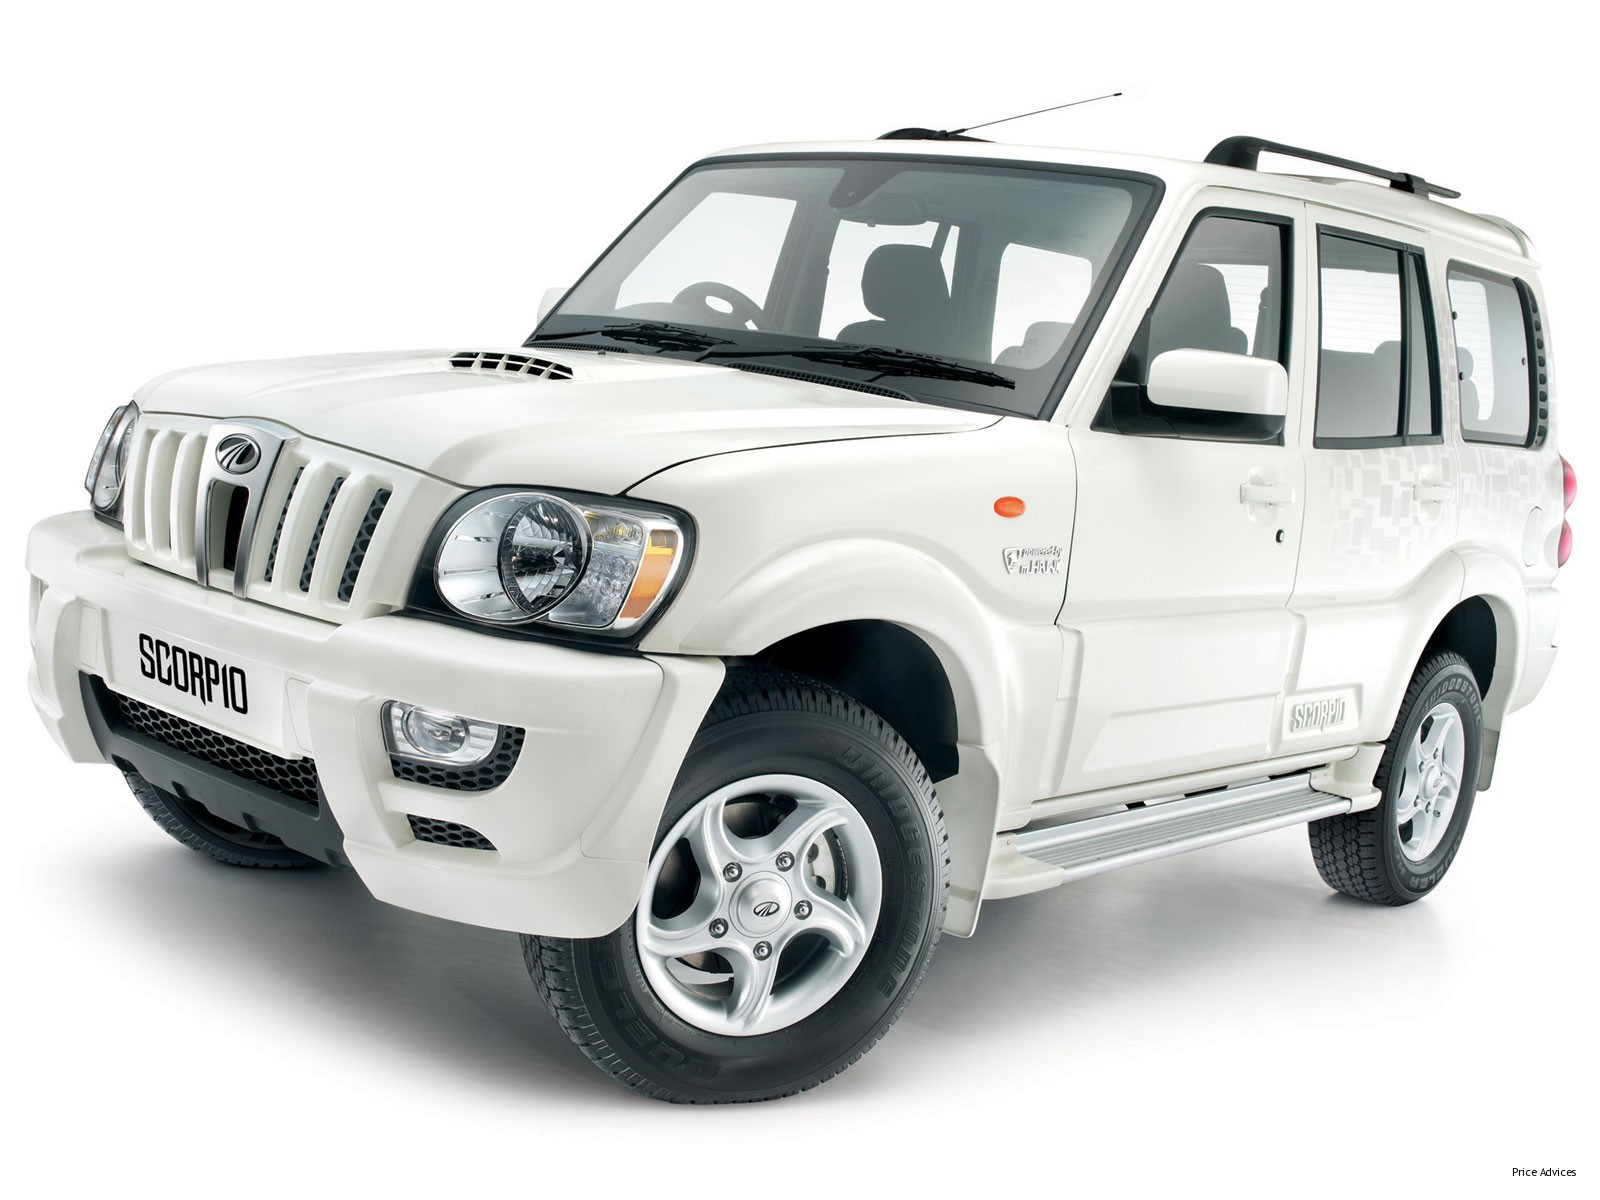 good remote control cars with Mahindra Scorpio Mhawk 22 Micro Hybird on 10788881 as well Bose Lifestyle V20 besides 11440 2004 Model Toyota Qualis additionally Axial Yeti First Drive Impressions as well New Game Mini Motor Racing Has Little Cars And Big Races In One Massive Download.